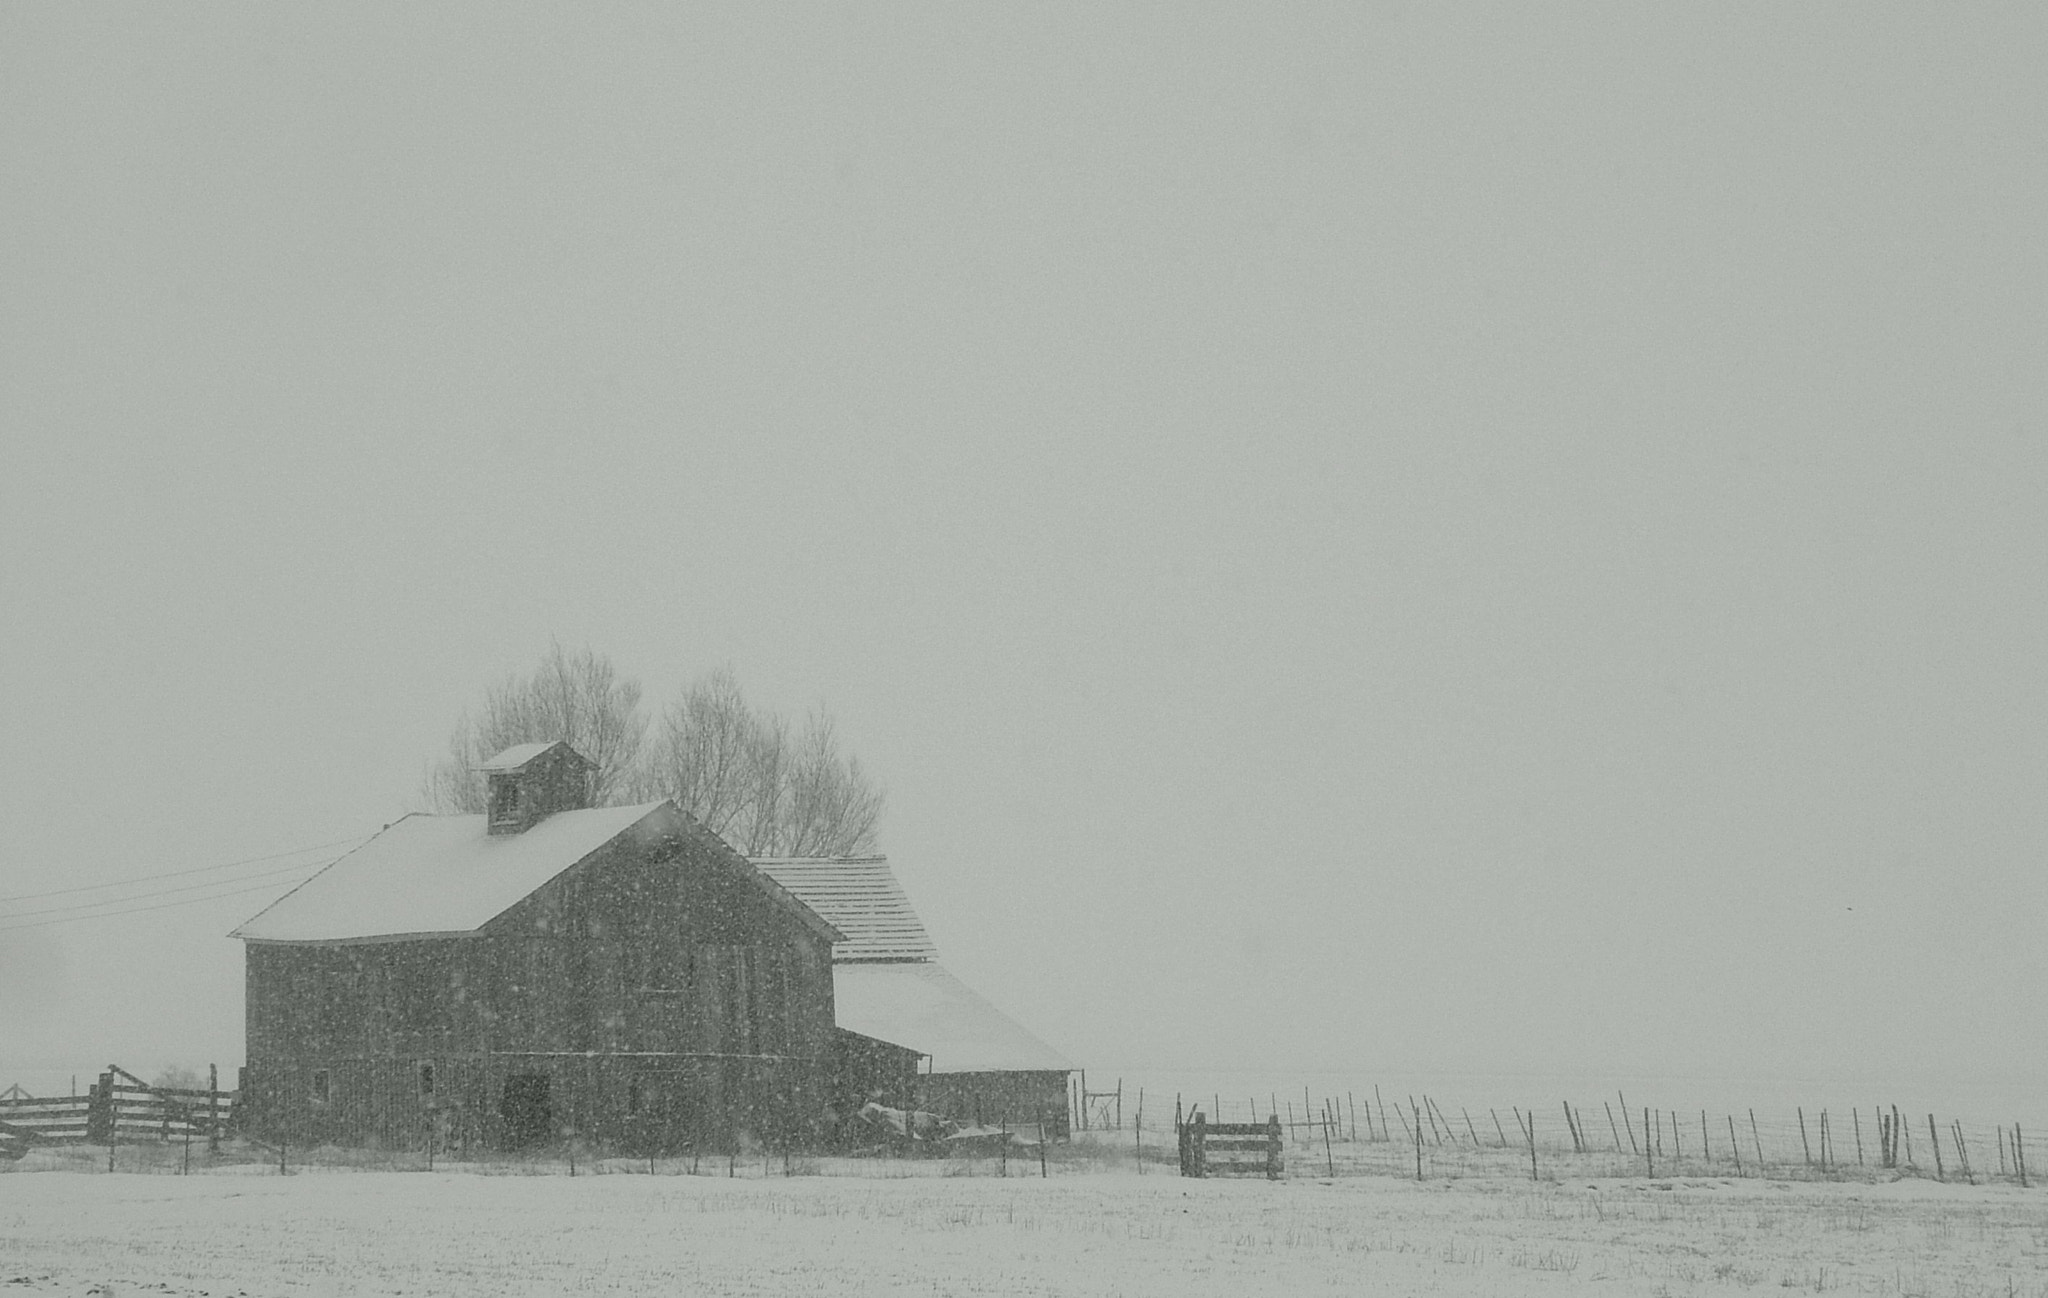 Photograph Barn on a Snowy Day by Sandee Gass on 500px